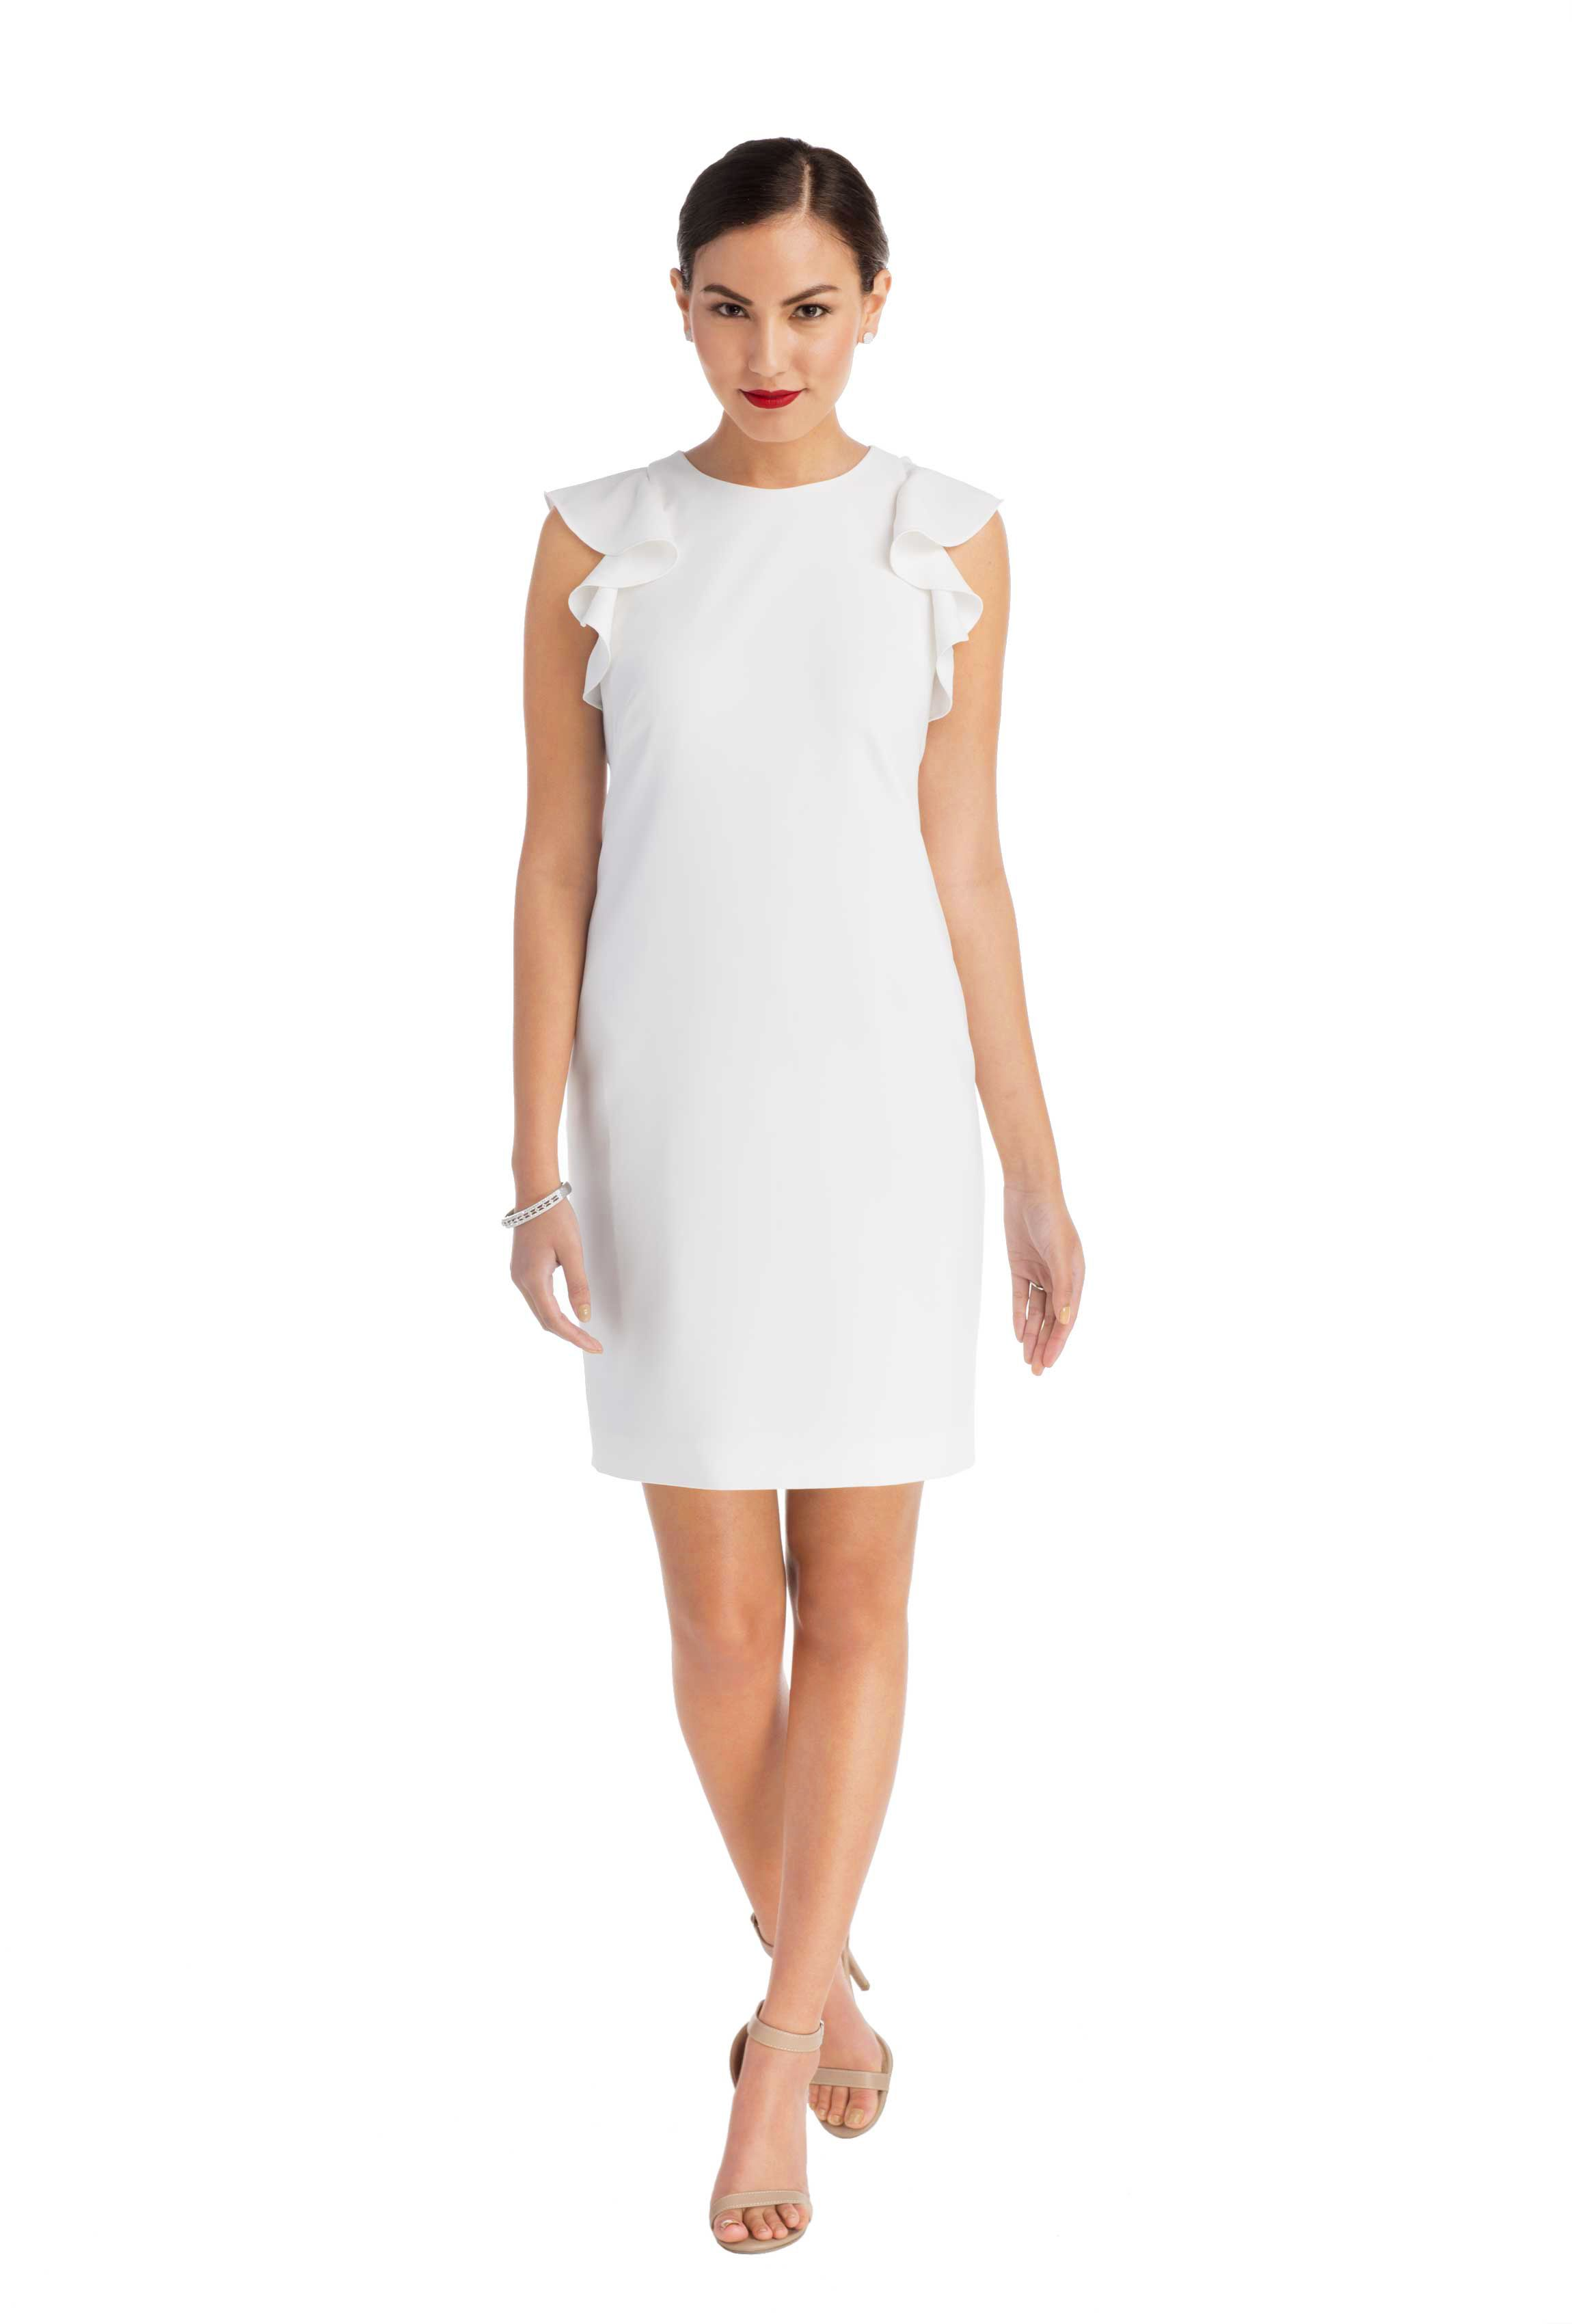 7 Designer Little White Dresses That You Can Rent For Your